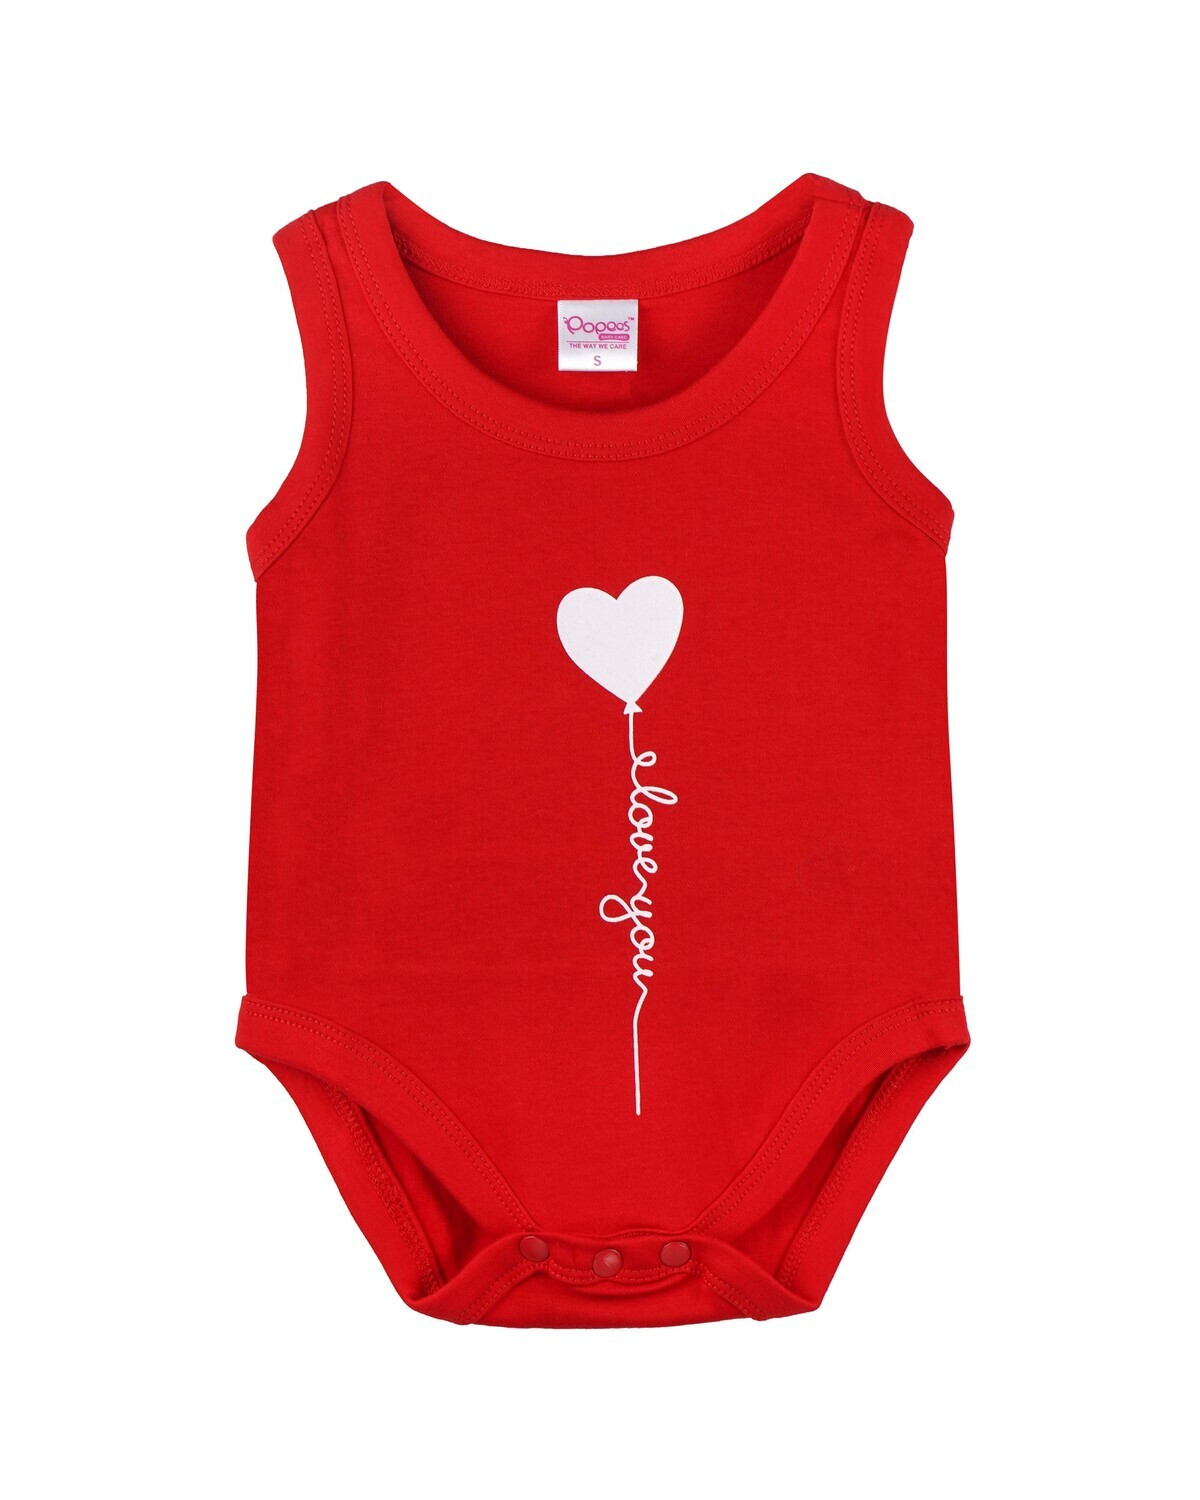 SPOCK RED Top/Trouser Half Sleeves Front Open Interlock for both Baby Boys and Girls UNISEX